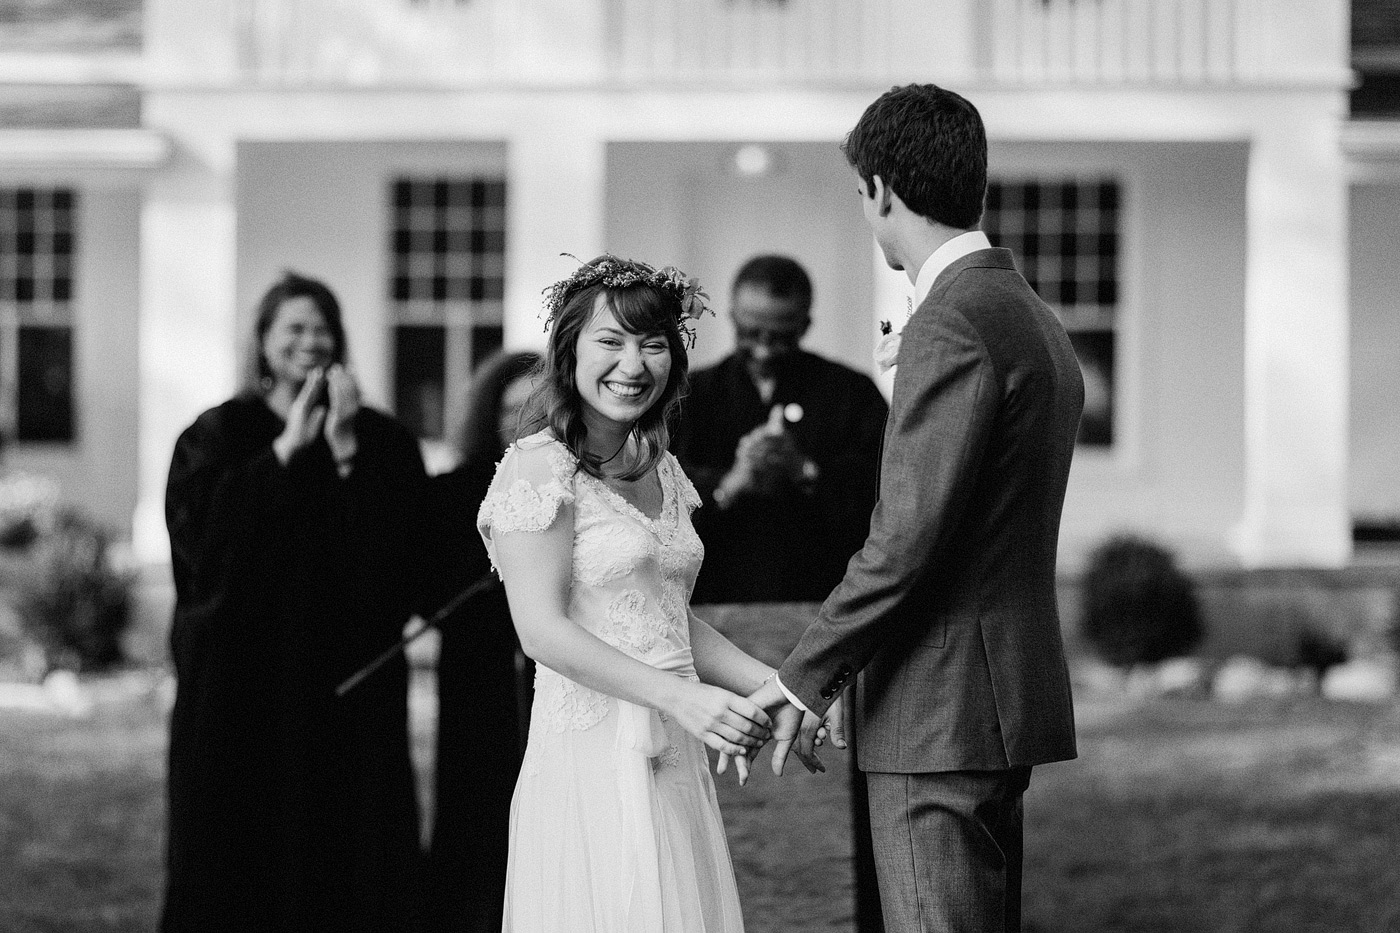 grand rapids ann arbor wedding photographer ceremony laughing